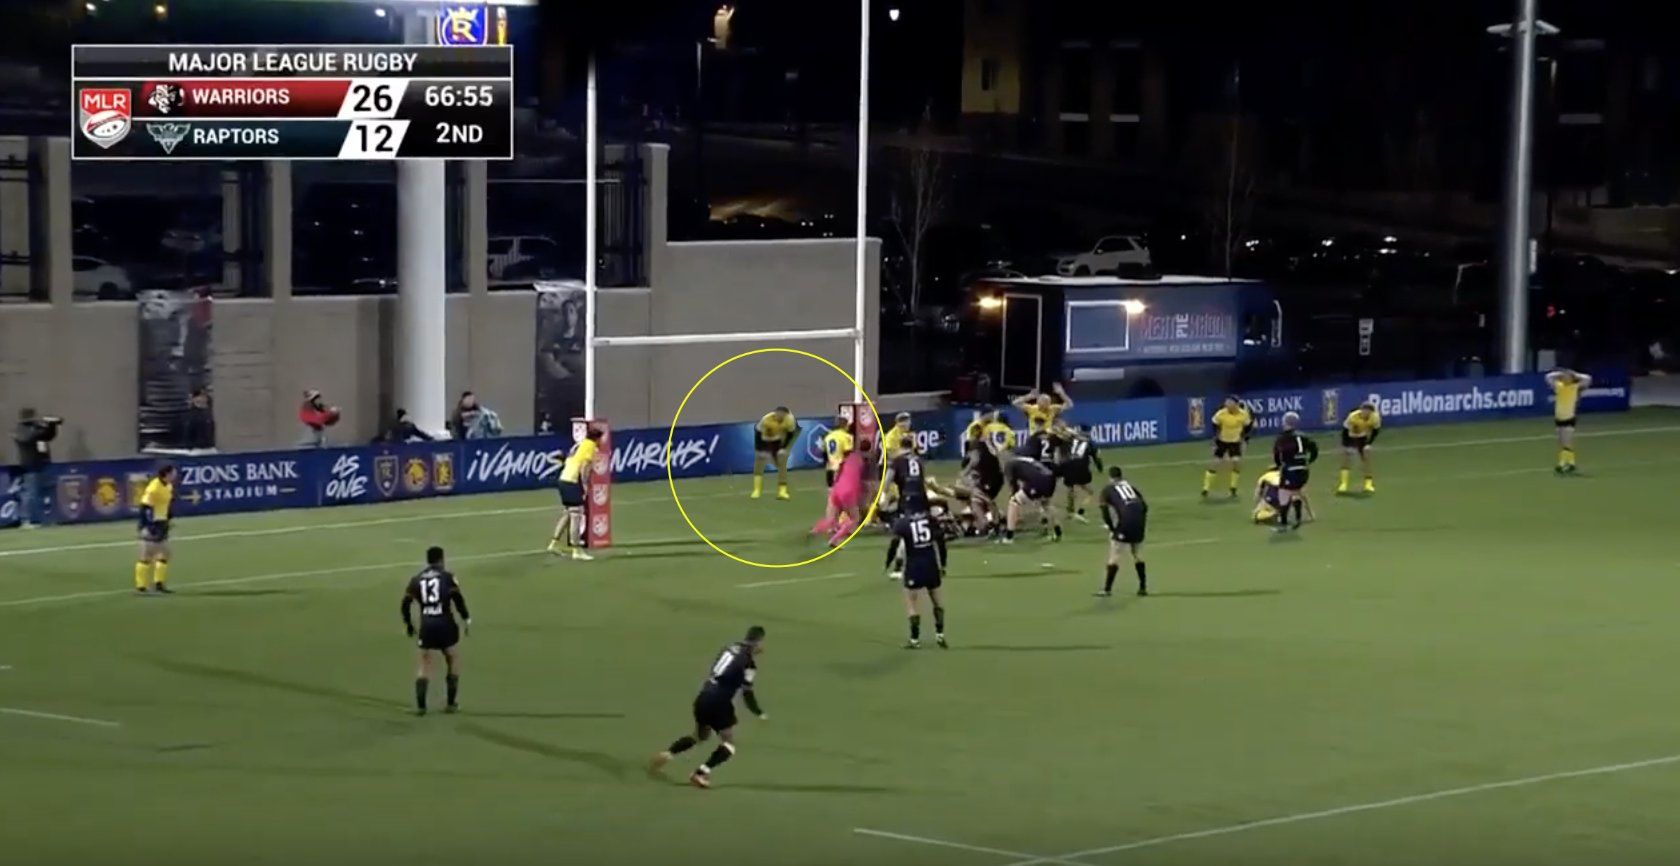 WATCH: The record for the longest solo try by a Hooker has just been broken